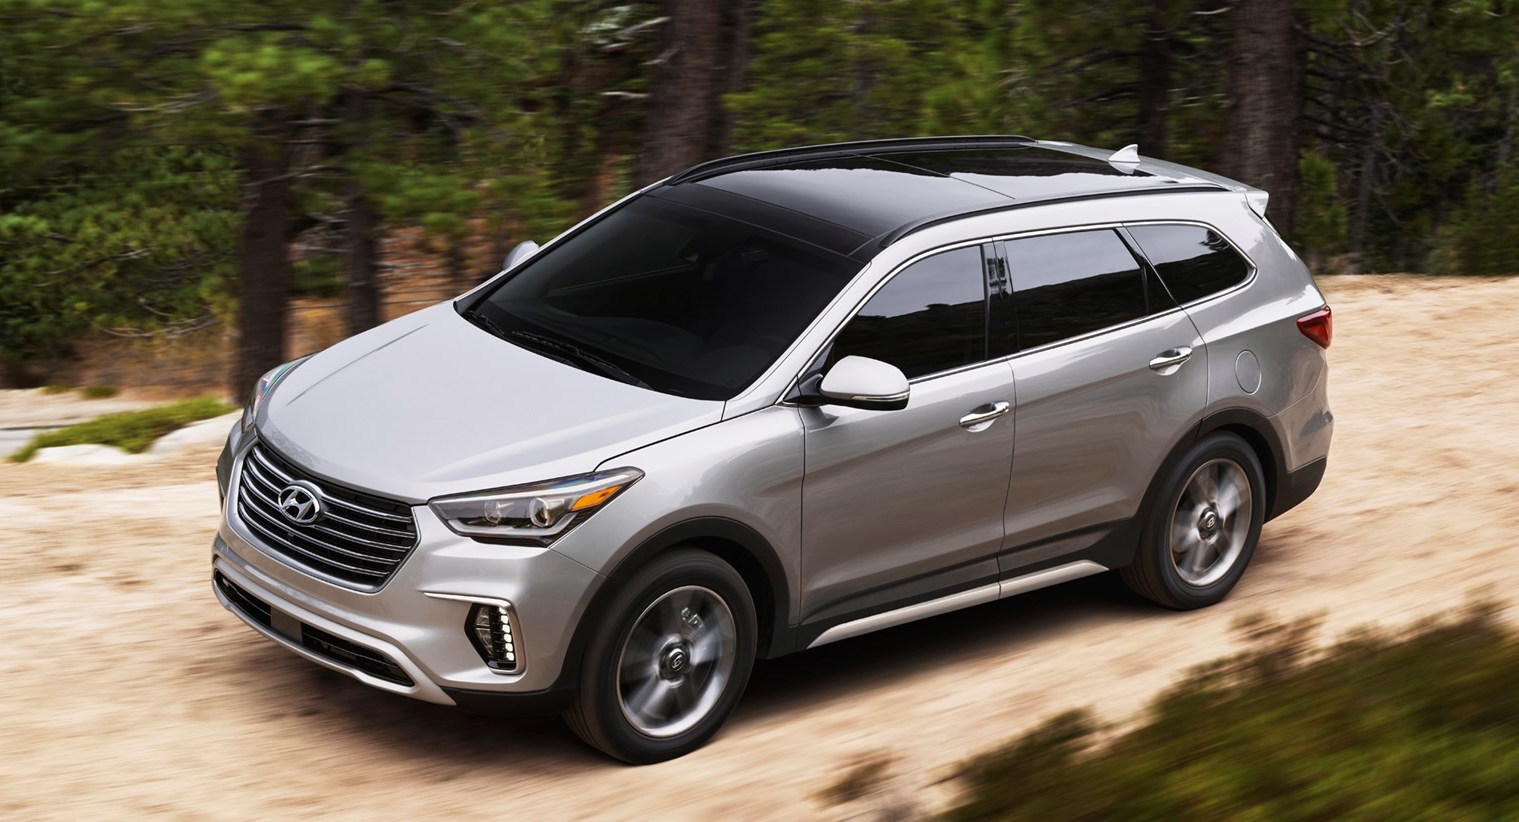 hyundai santa fe ultimate limited 2017 with 2017 Santa Fe Sport 11 on 2017 Hyundai Santa Fe Limited Ultimate Awd Review Curbed With Craig Cole additionally 2017 Santa Fe Sport 11 together with Tucson moreover 2017 Acura Mdx First Look Review also Watch.